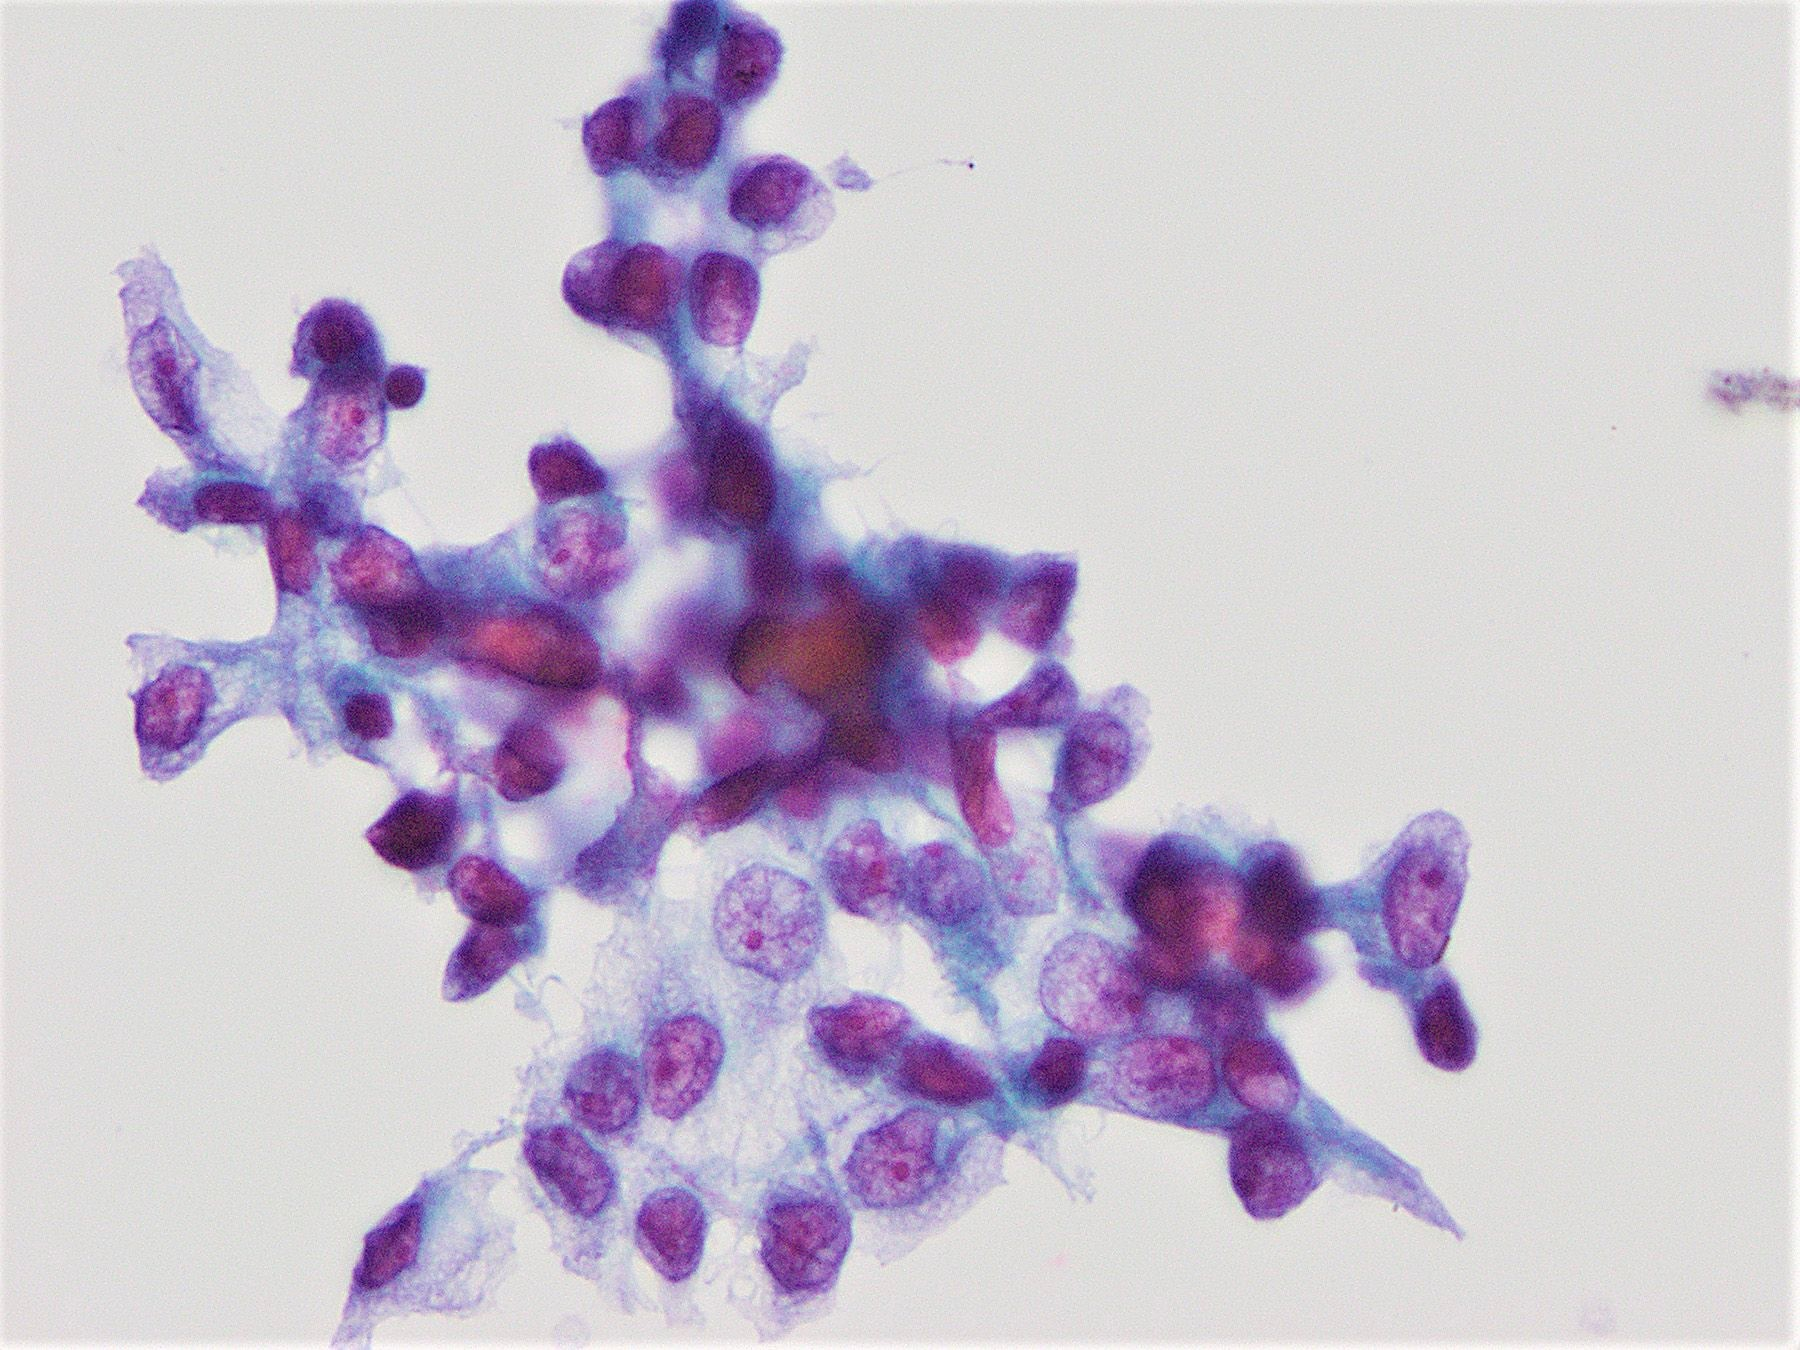 Cytological and architectural atypia